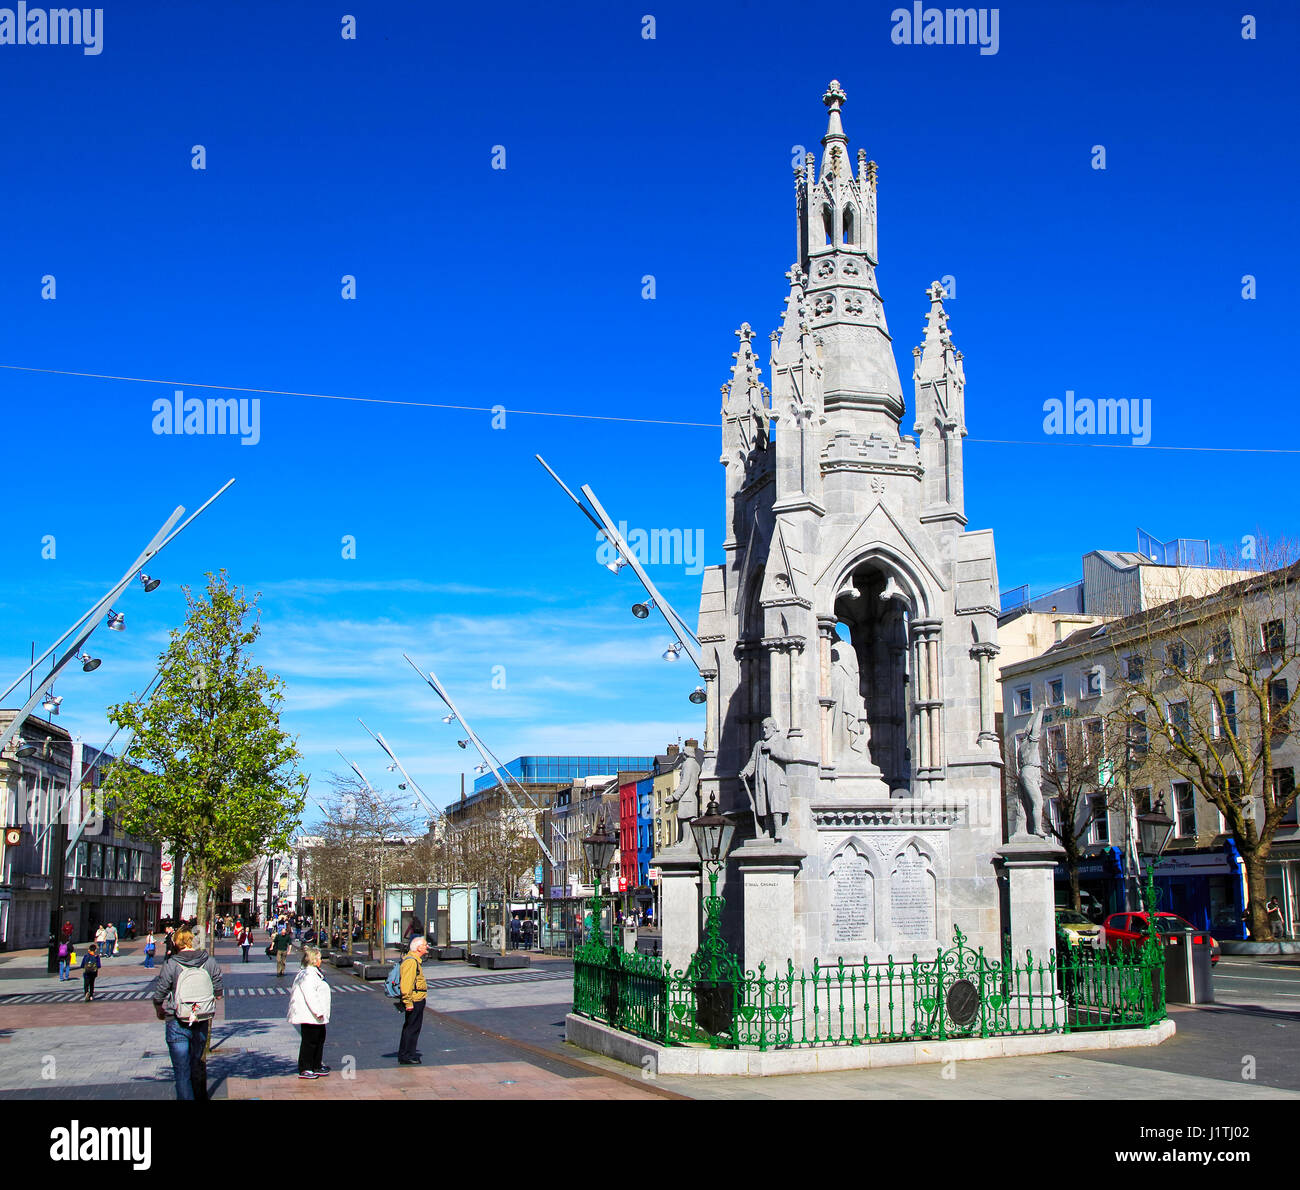 National Monument memorial, Grand Parade, City of Cork, County Cork, Ireland, Irish Republic Stock Photo